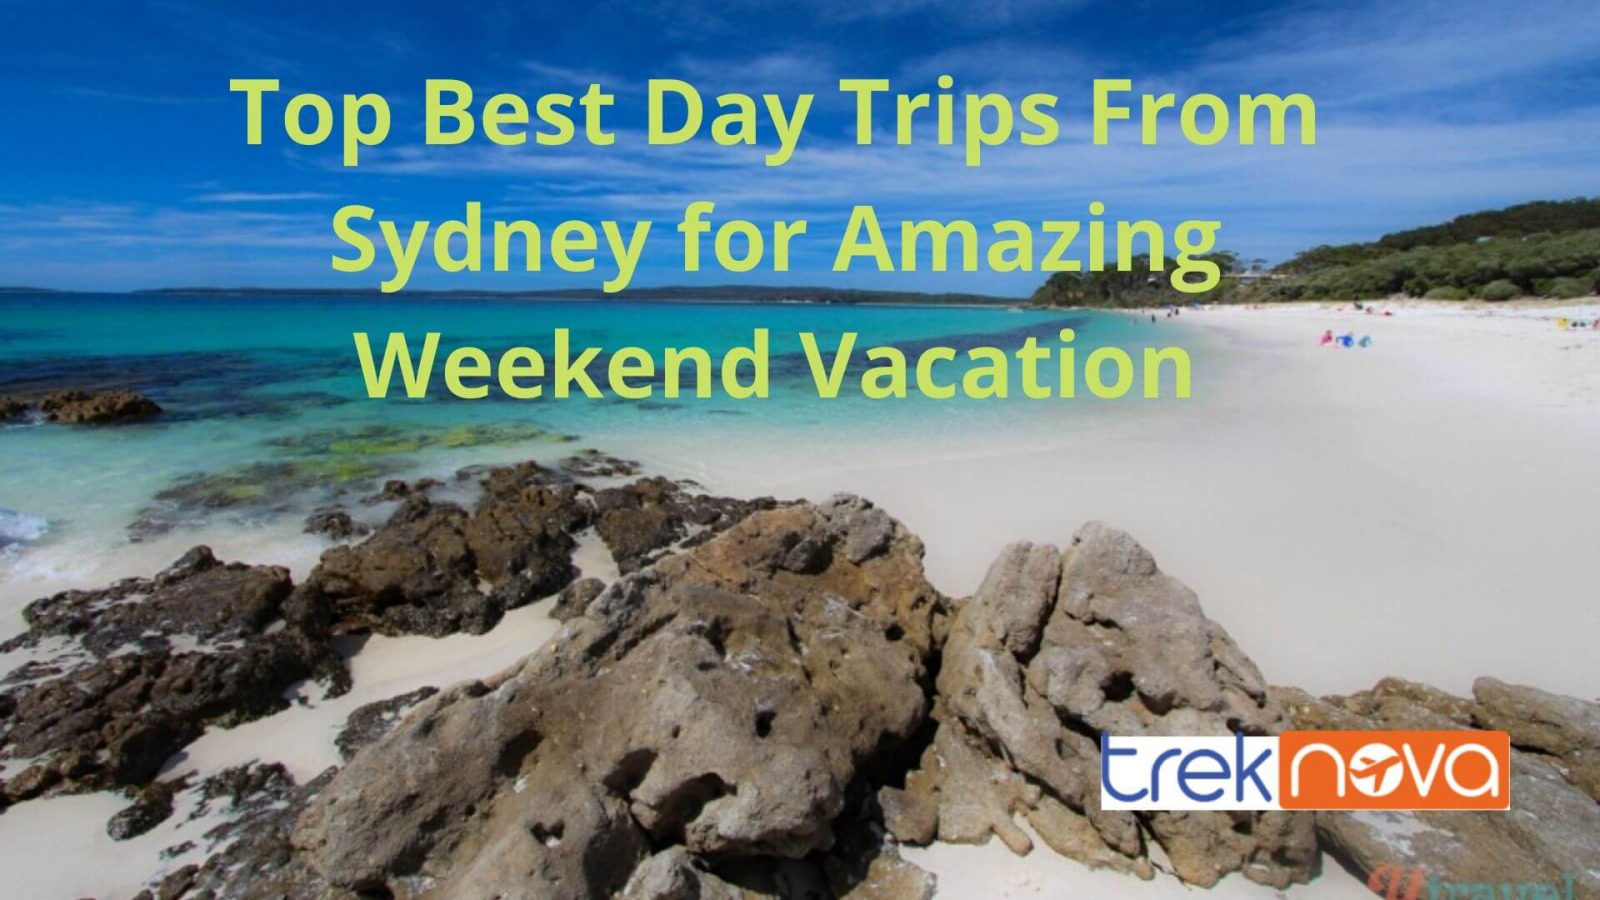 Top 12 Best Day Trips From Sydney for Amazing Weekend Vacation